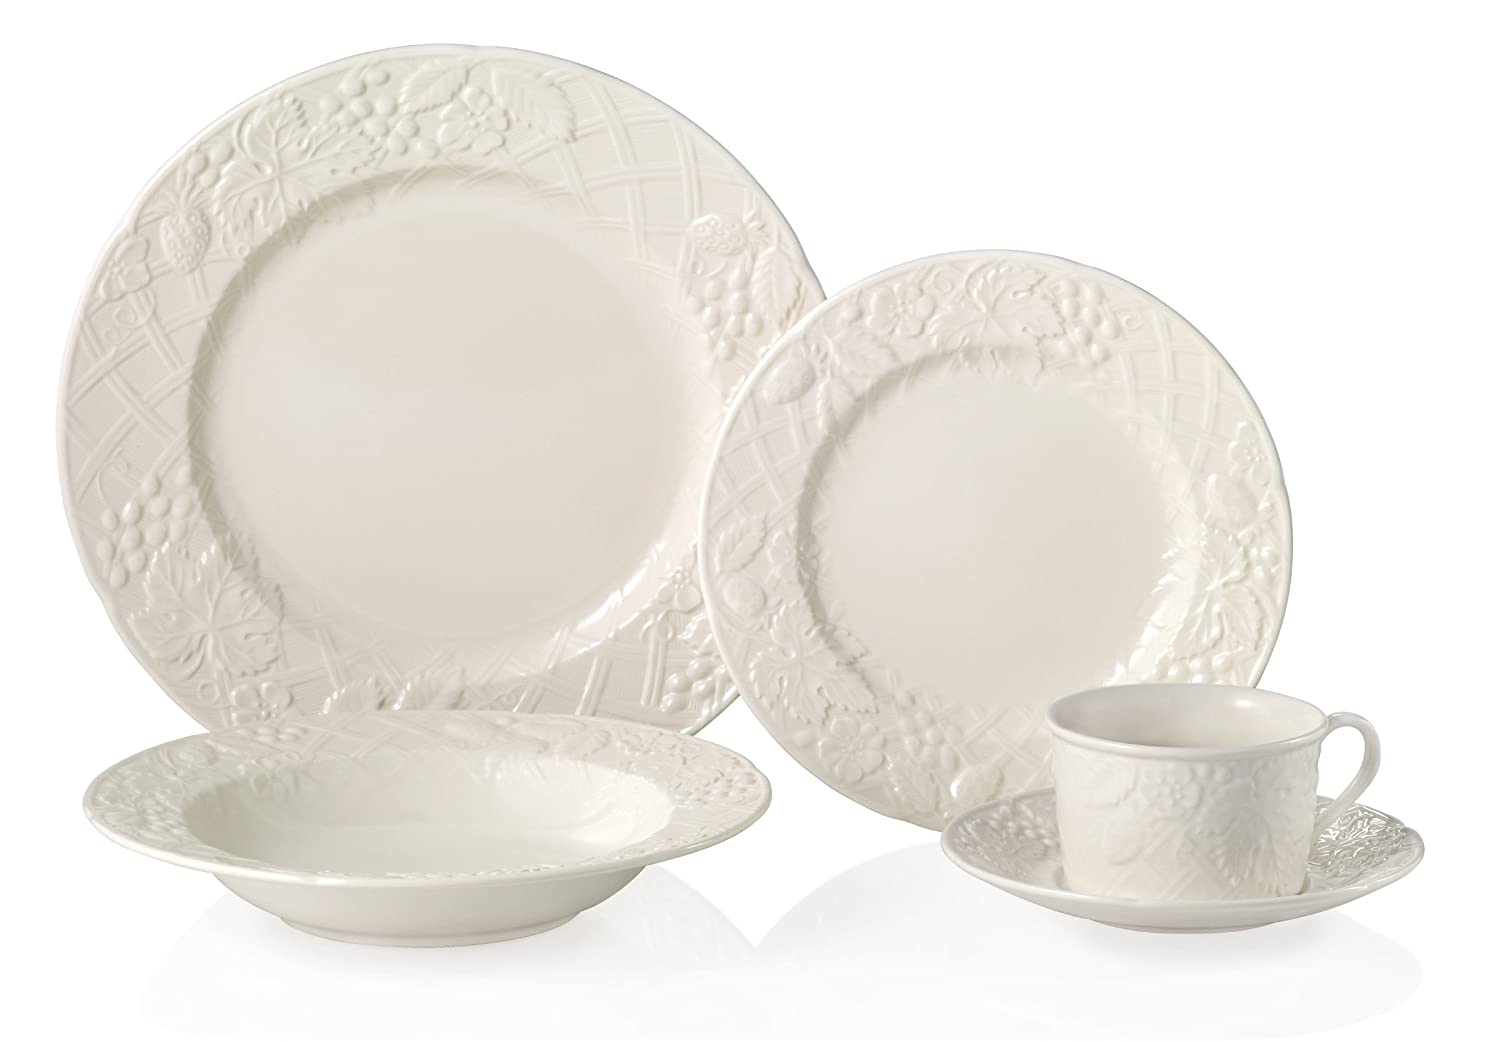 Amazon.com Mikasa English Countryside 40-Piece Dinnerware Set Service for 8 Kitchen u0026 Dining  sc 1 st  Amazon.com & Amazon.com: Mikasa English Countryside 40-Piece Dinnerware Set ...